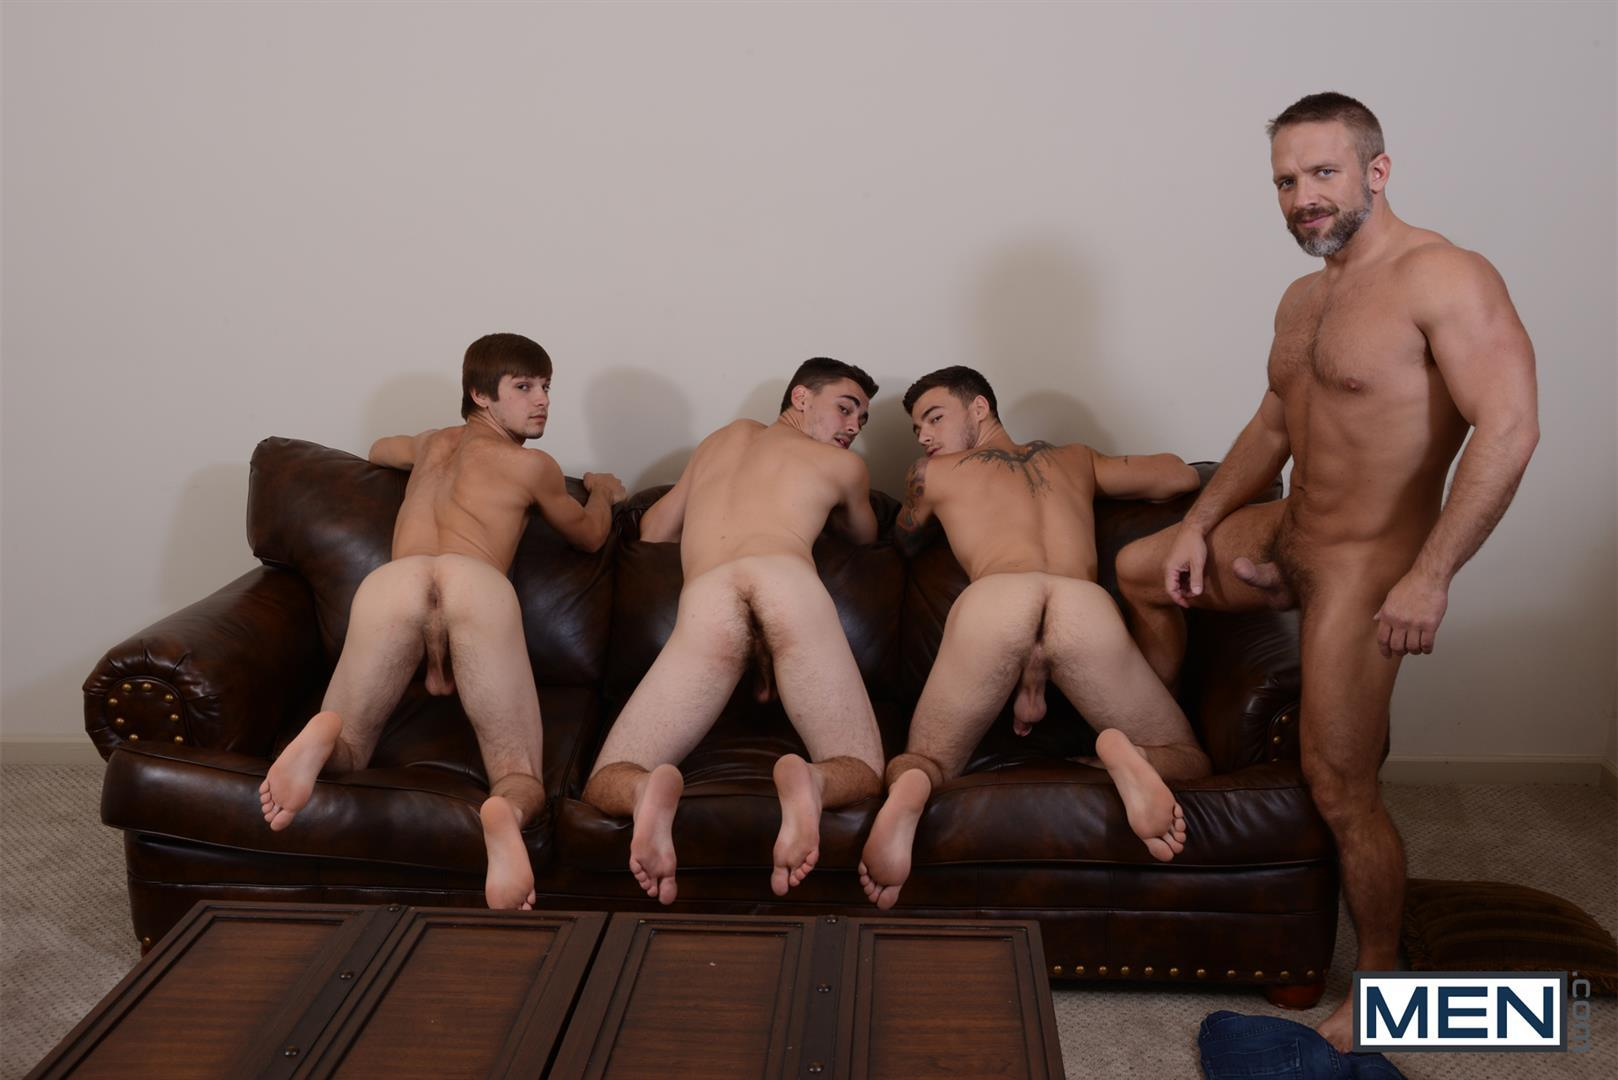 Men Jizz Orgy Asher Hawk and Dirk Caber and Johnny Rapid and Trevor Spade Triple Penetrated In the Ass Amateur Gay Porn 10 Stepfather Dirk Caber Gets TRIPLE Penetrated By His Stepsons